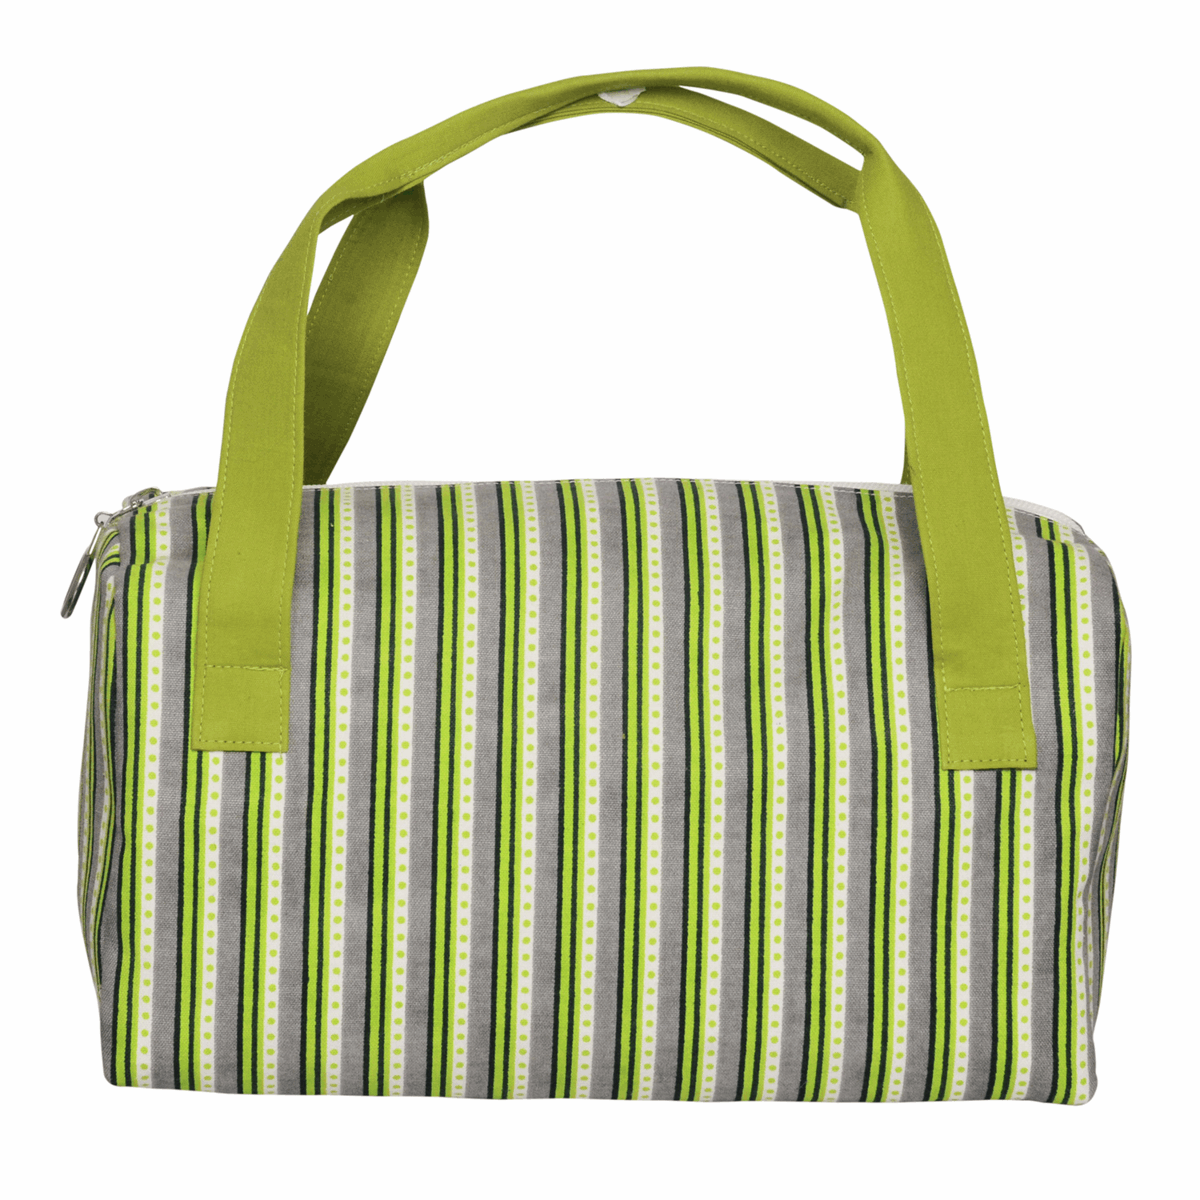 Picture of Greenery: Crafting Caddy